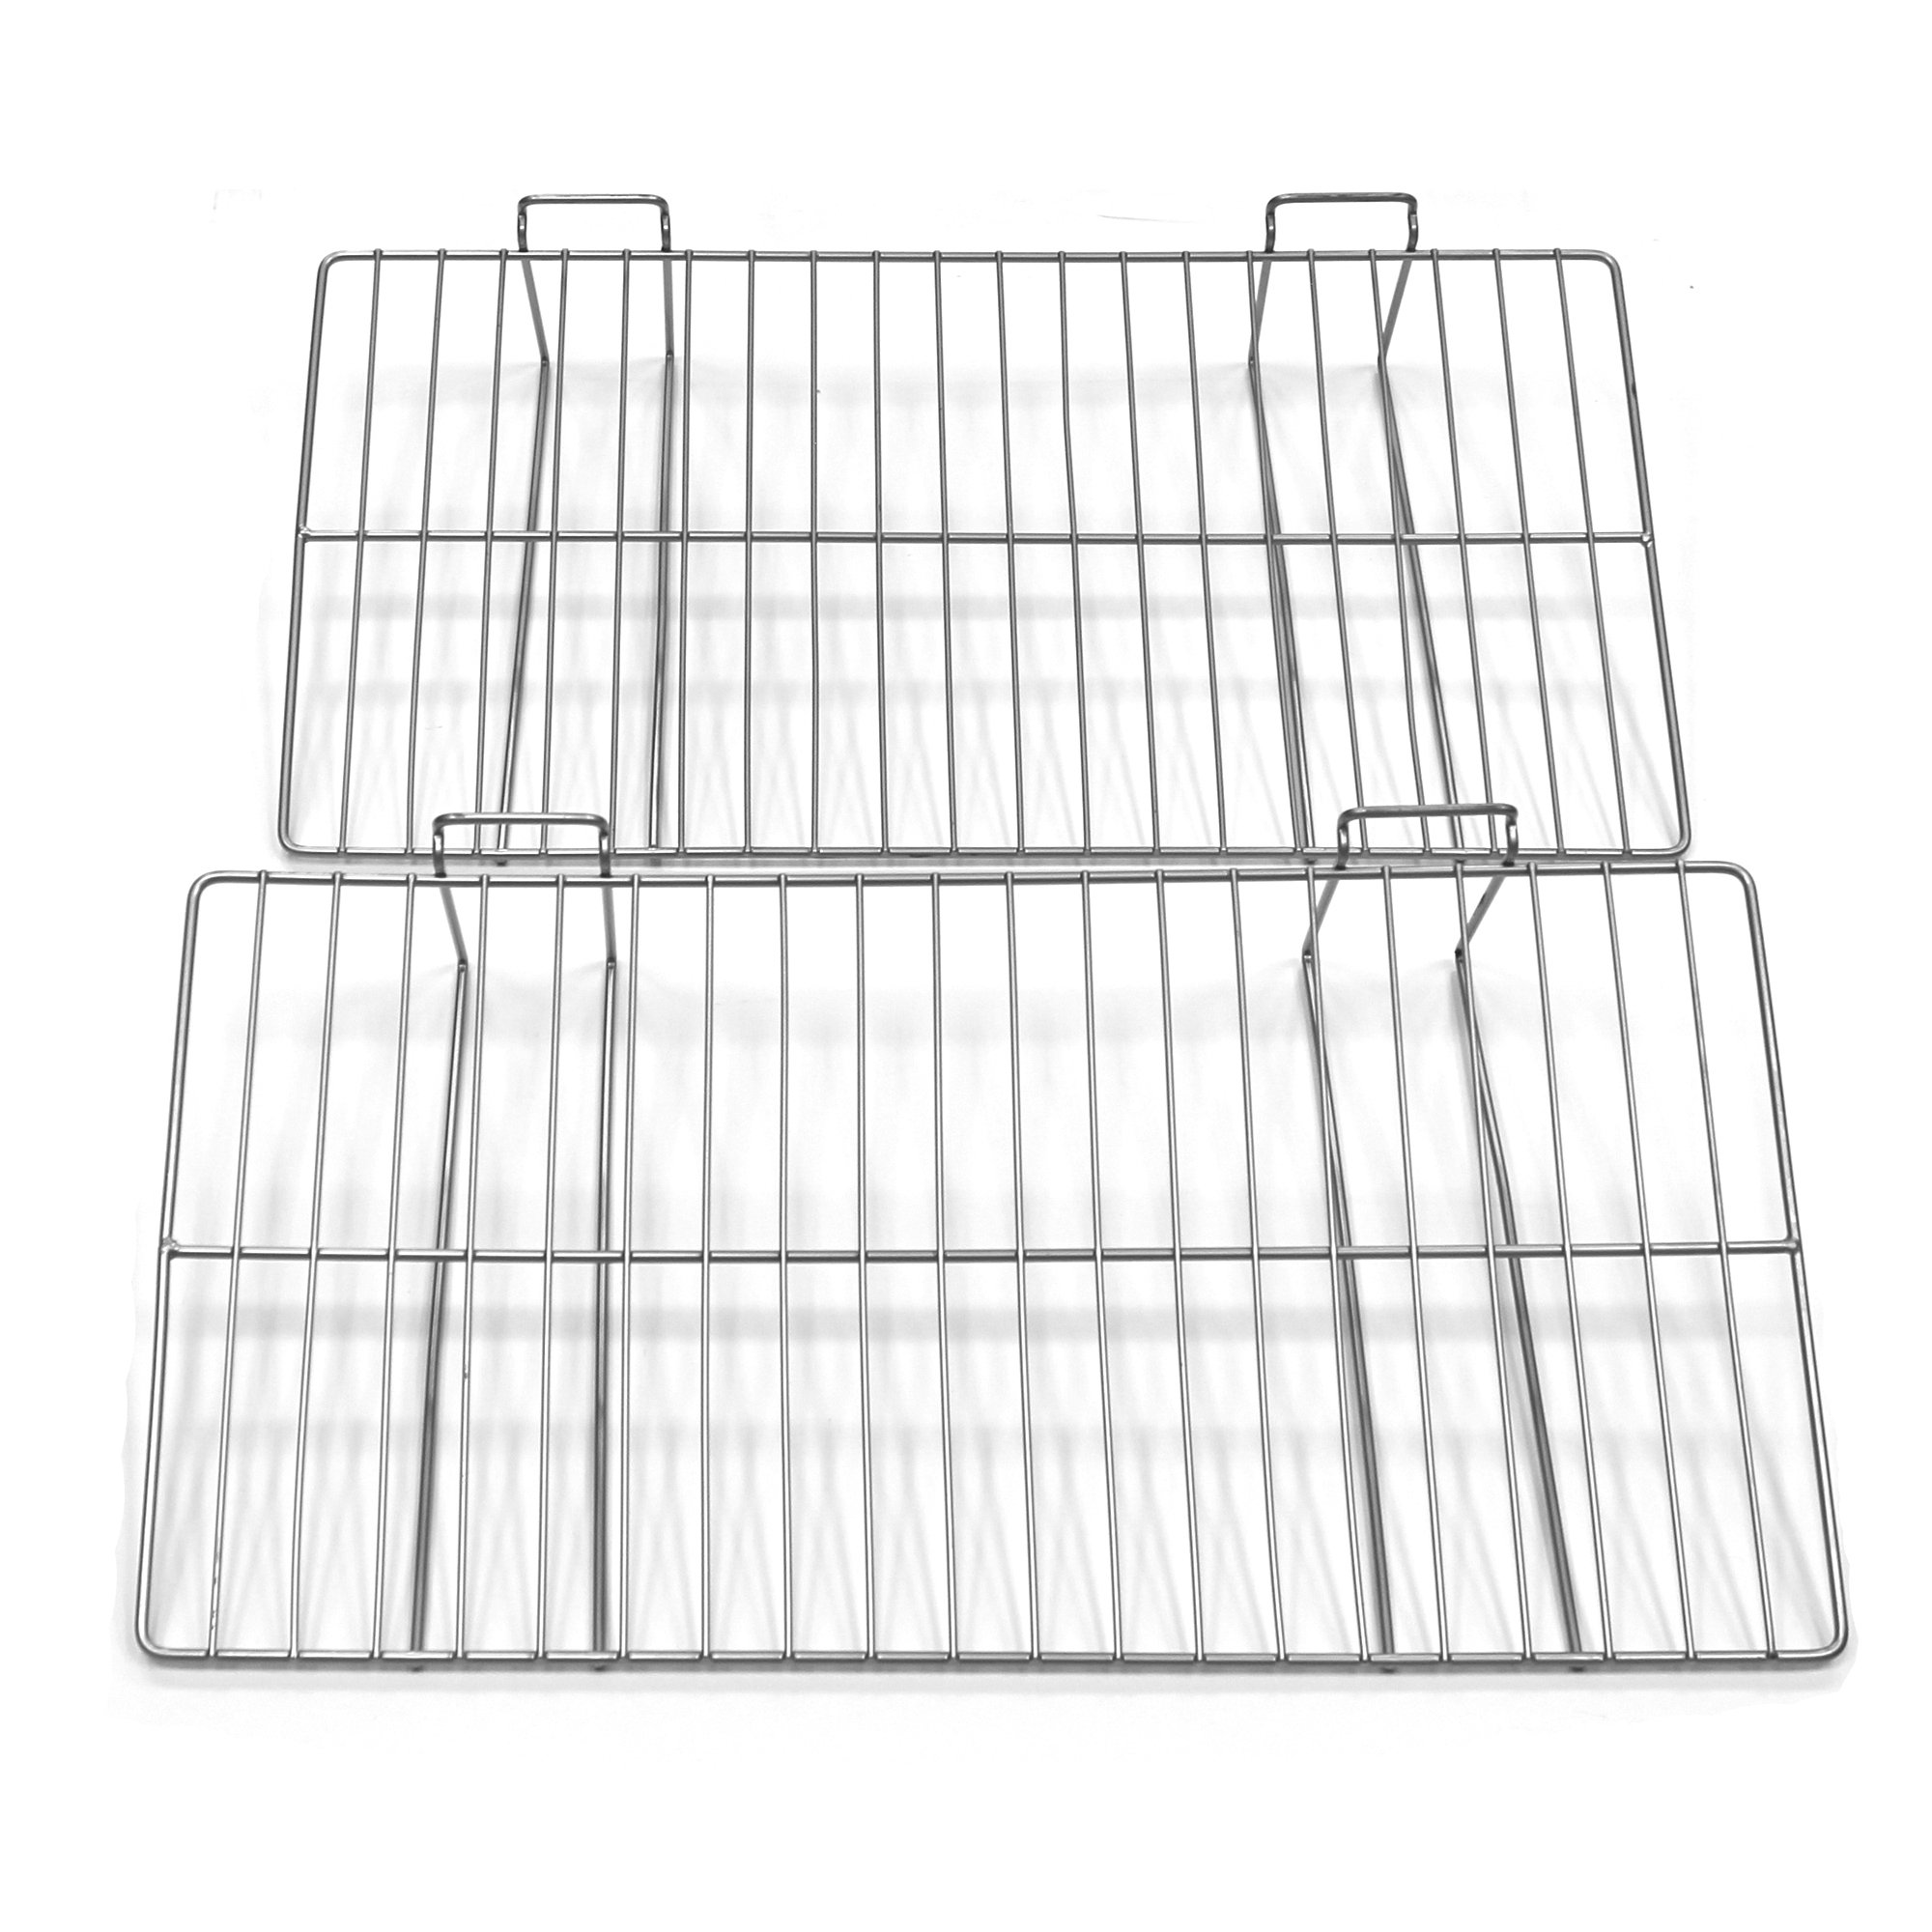 Proslat 13018 12-Inch x 24-Inch Ventilated Metal Shelf Designed for Proslat PVC Slatwall, 2-Pack by Proslat